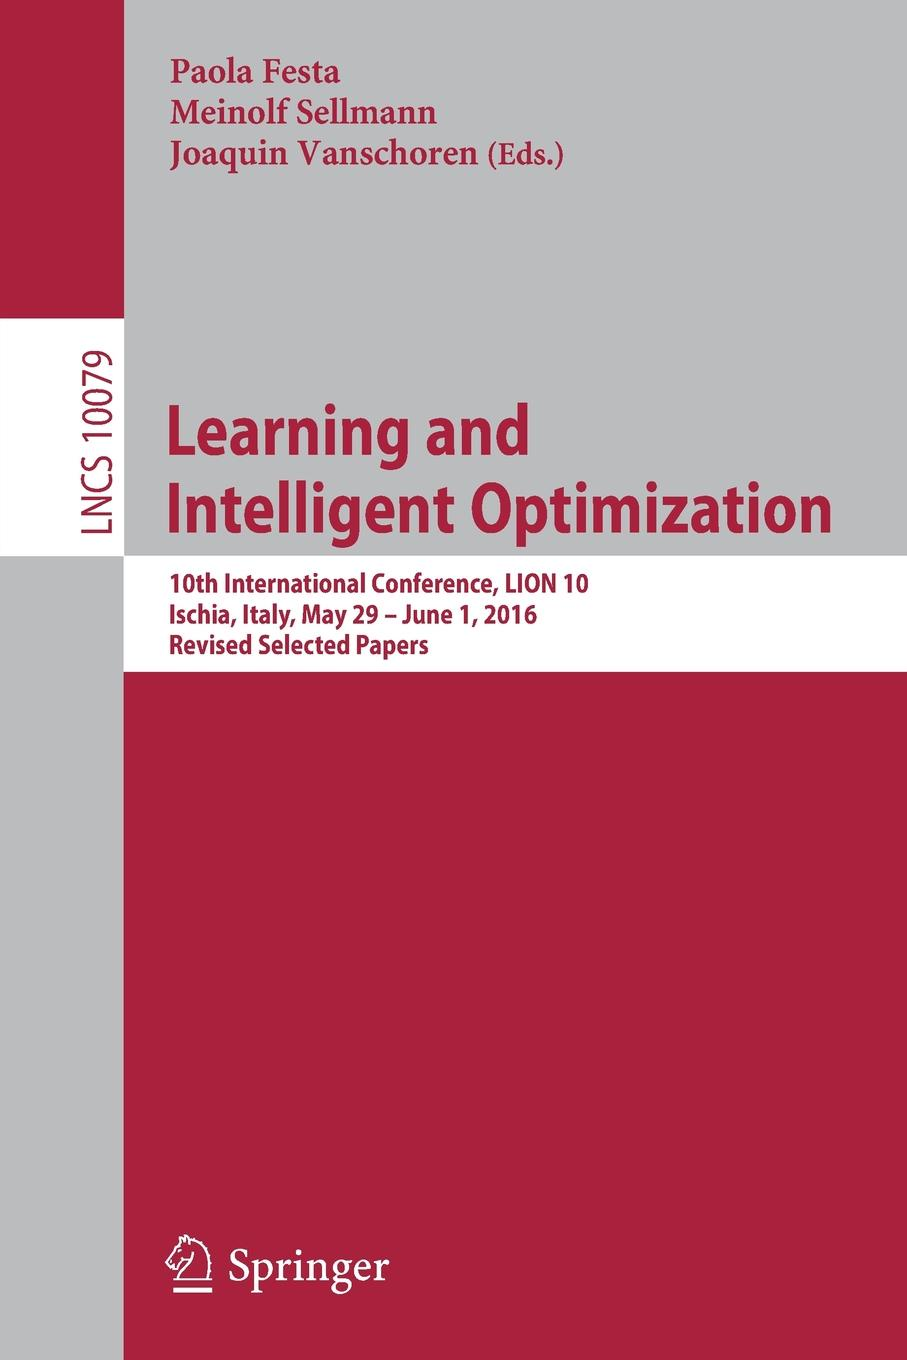 Learning and Intelligent Optimization. 10th International Conference, LION 10, Ischia, Italy, May 29 -- June 1, 2016, Revised Selected Papers